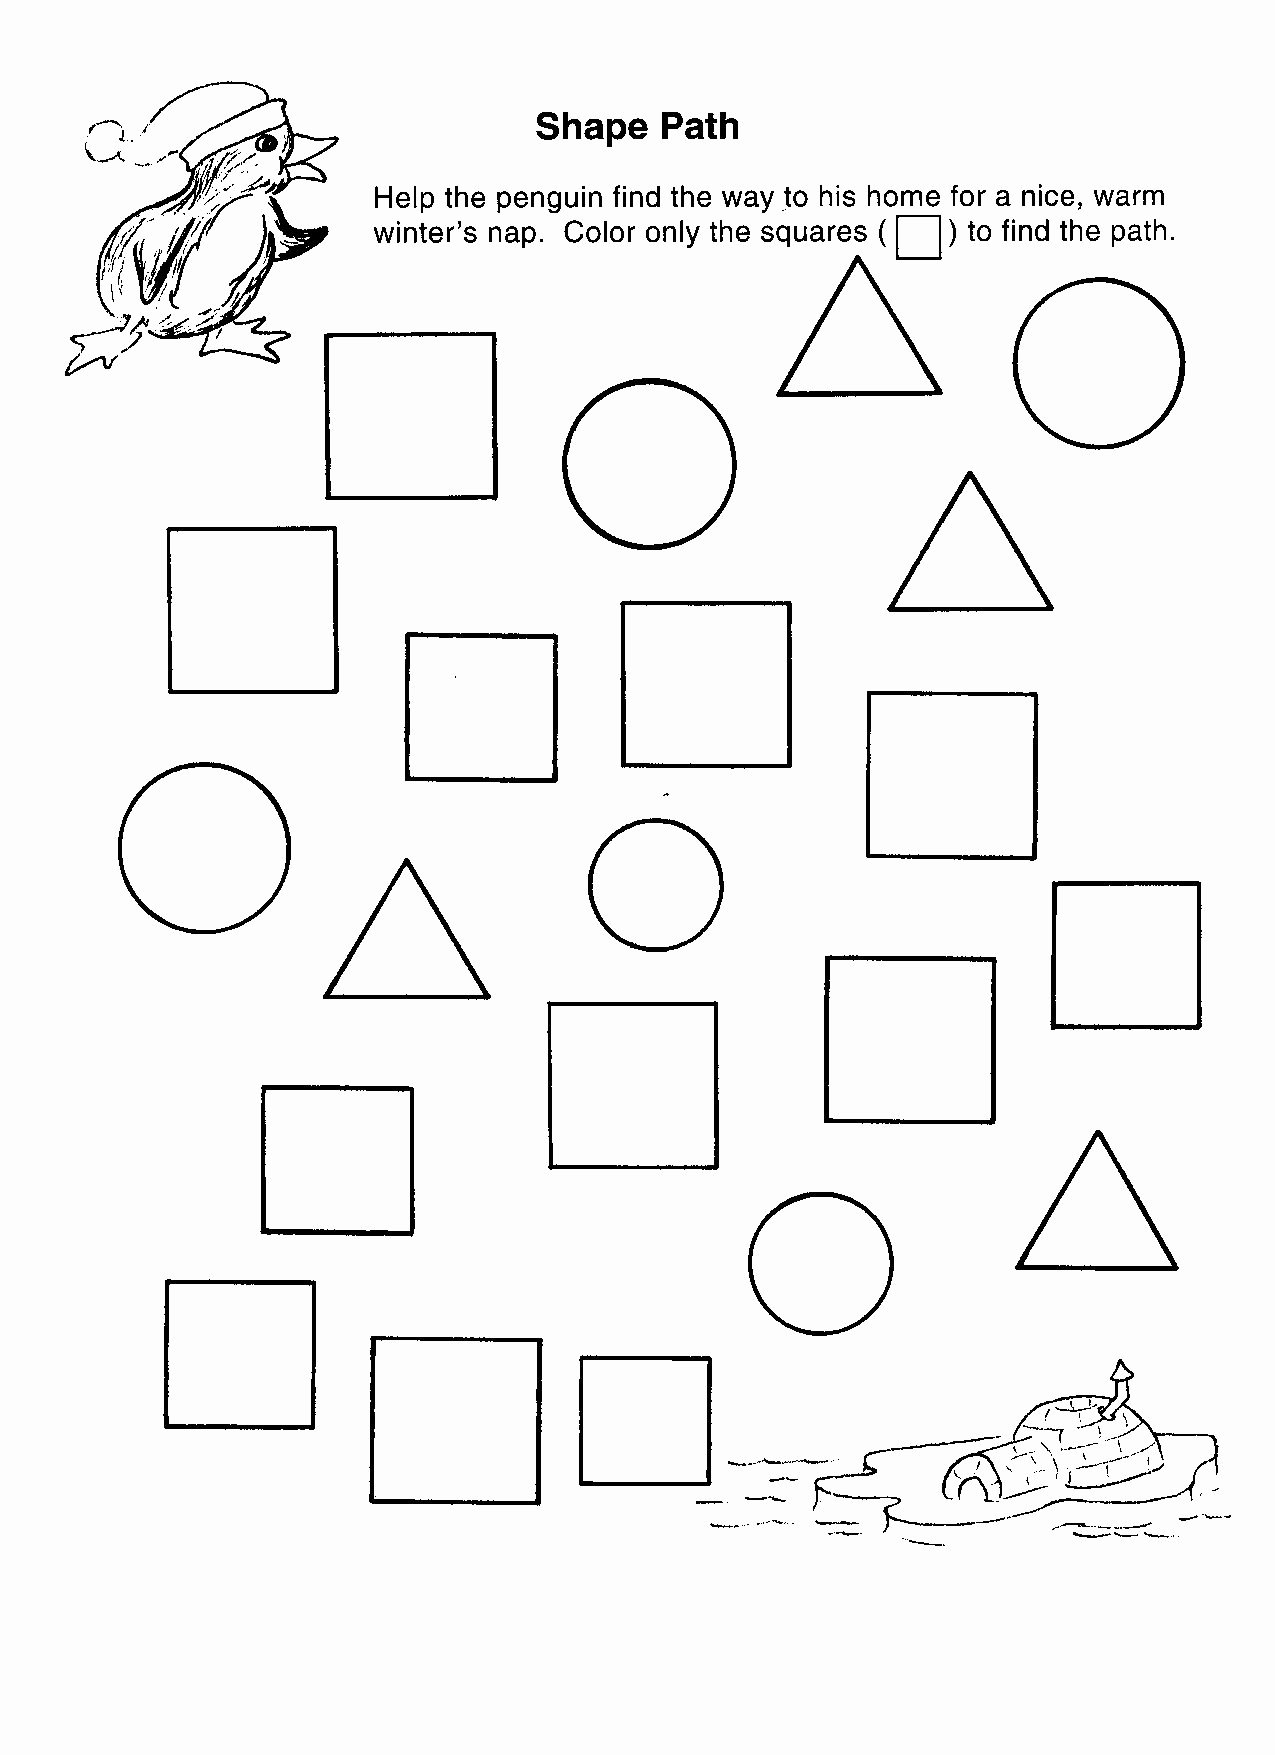 Shape Recognition Worksheets for Preschoolers Inspirational Shape Recognition